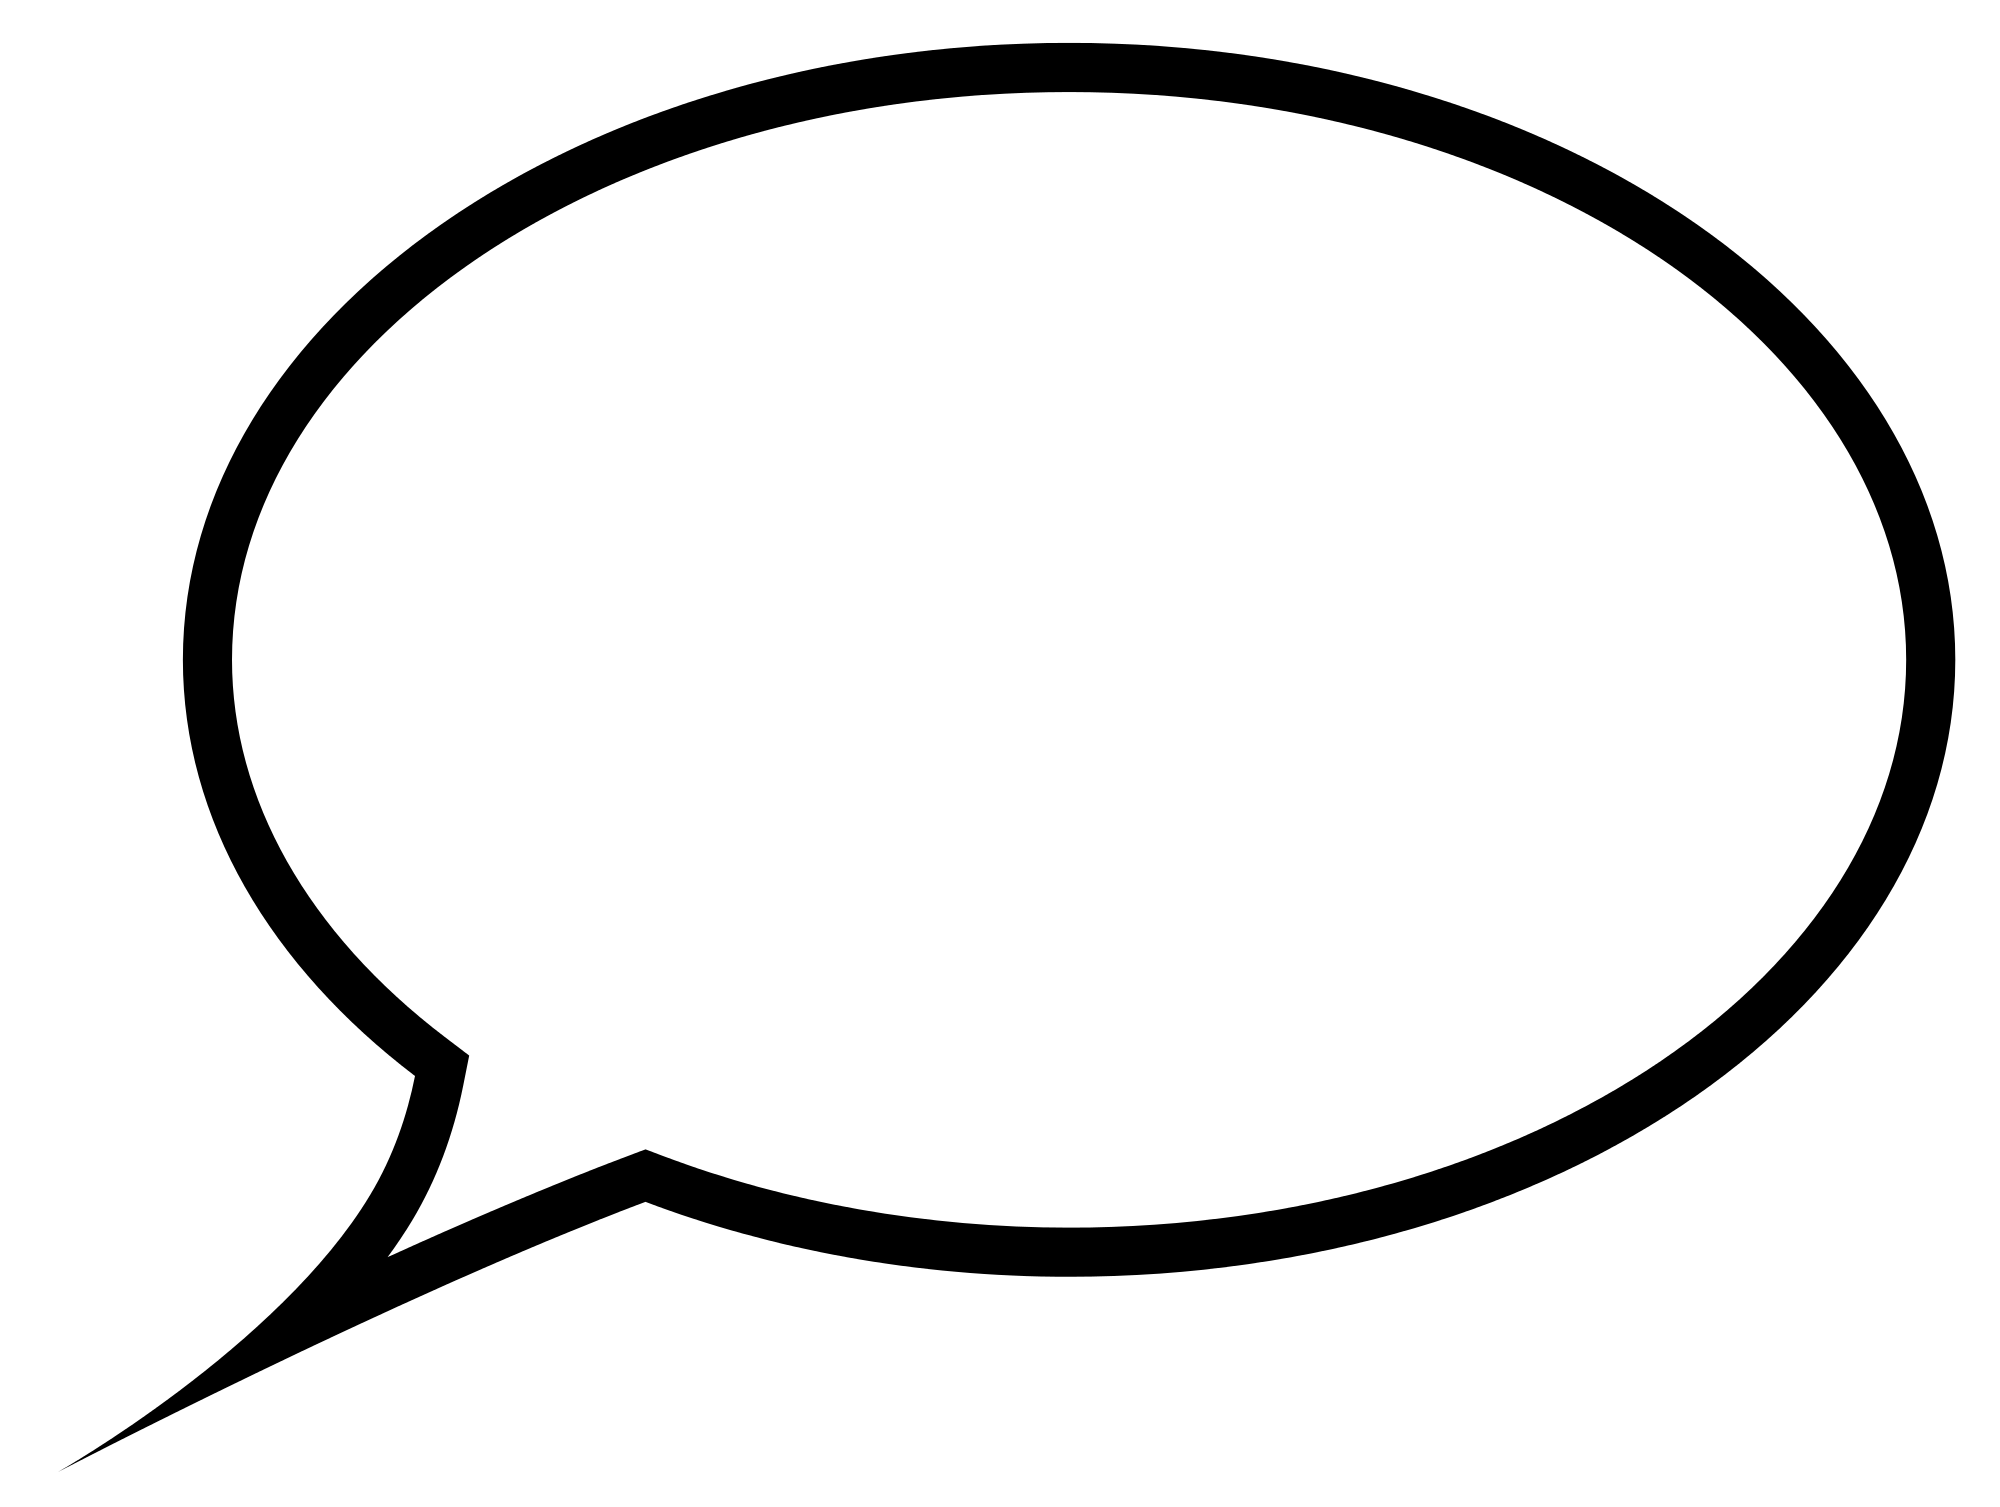 picture freeuse stock Conversations transparent PNG images